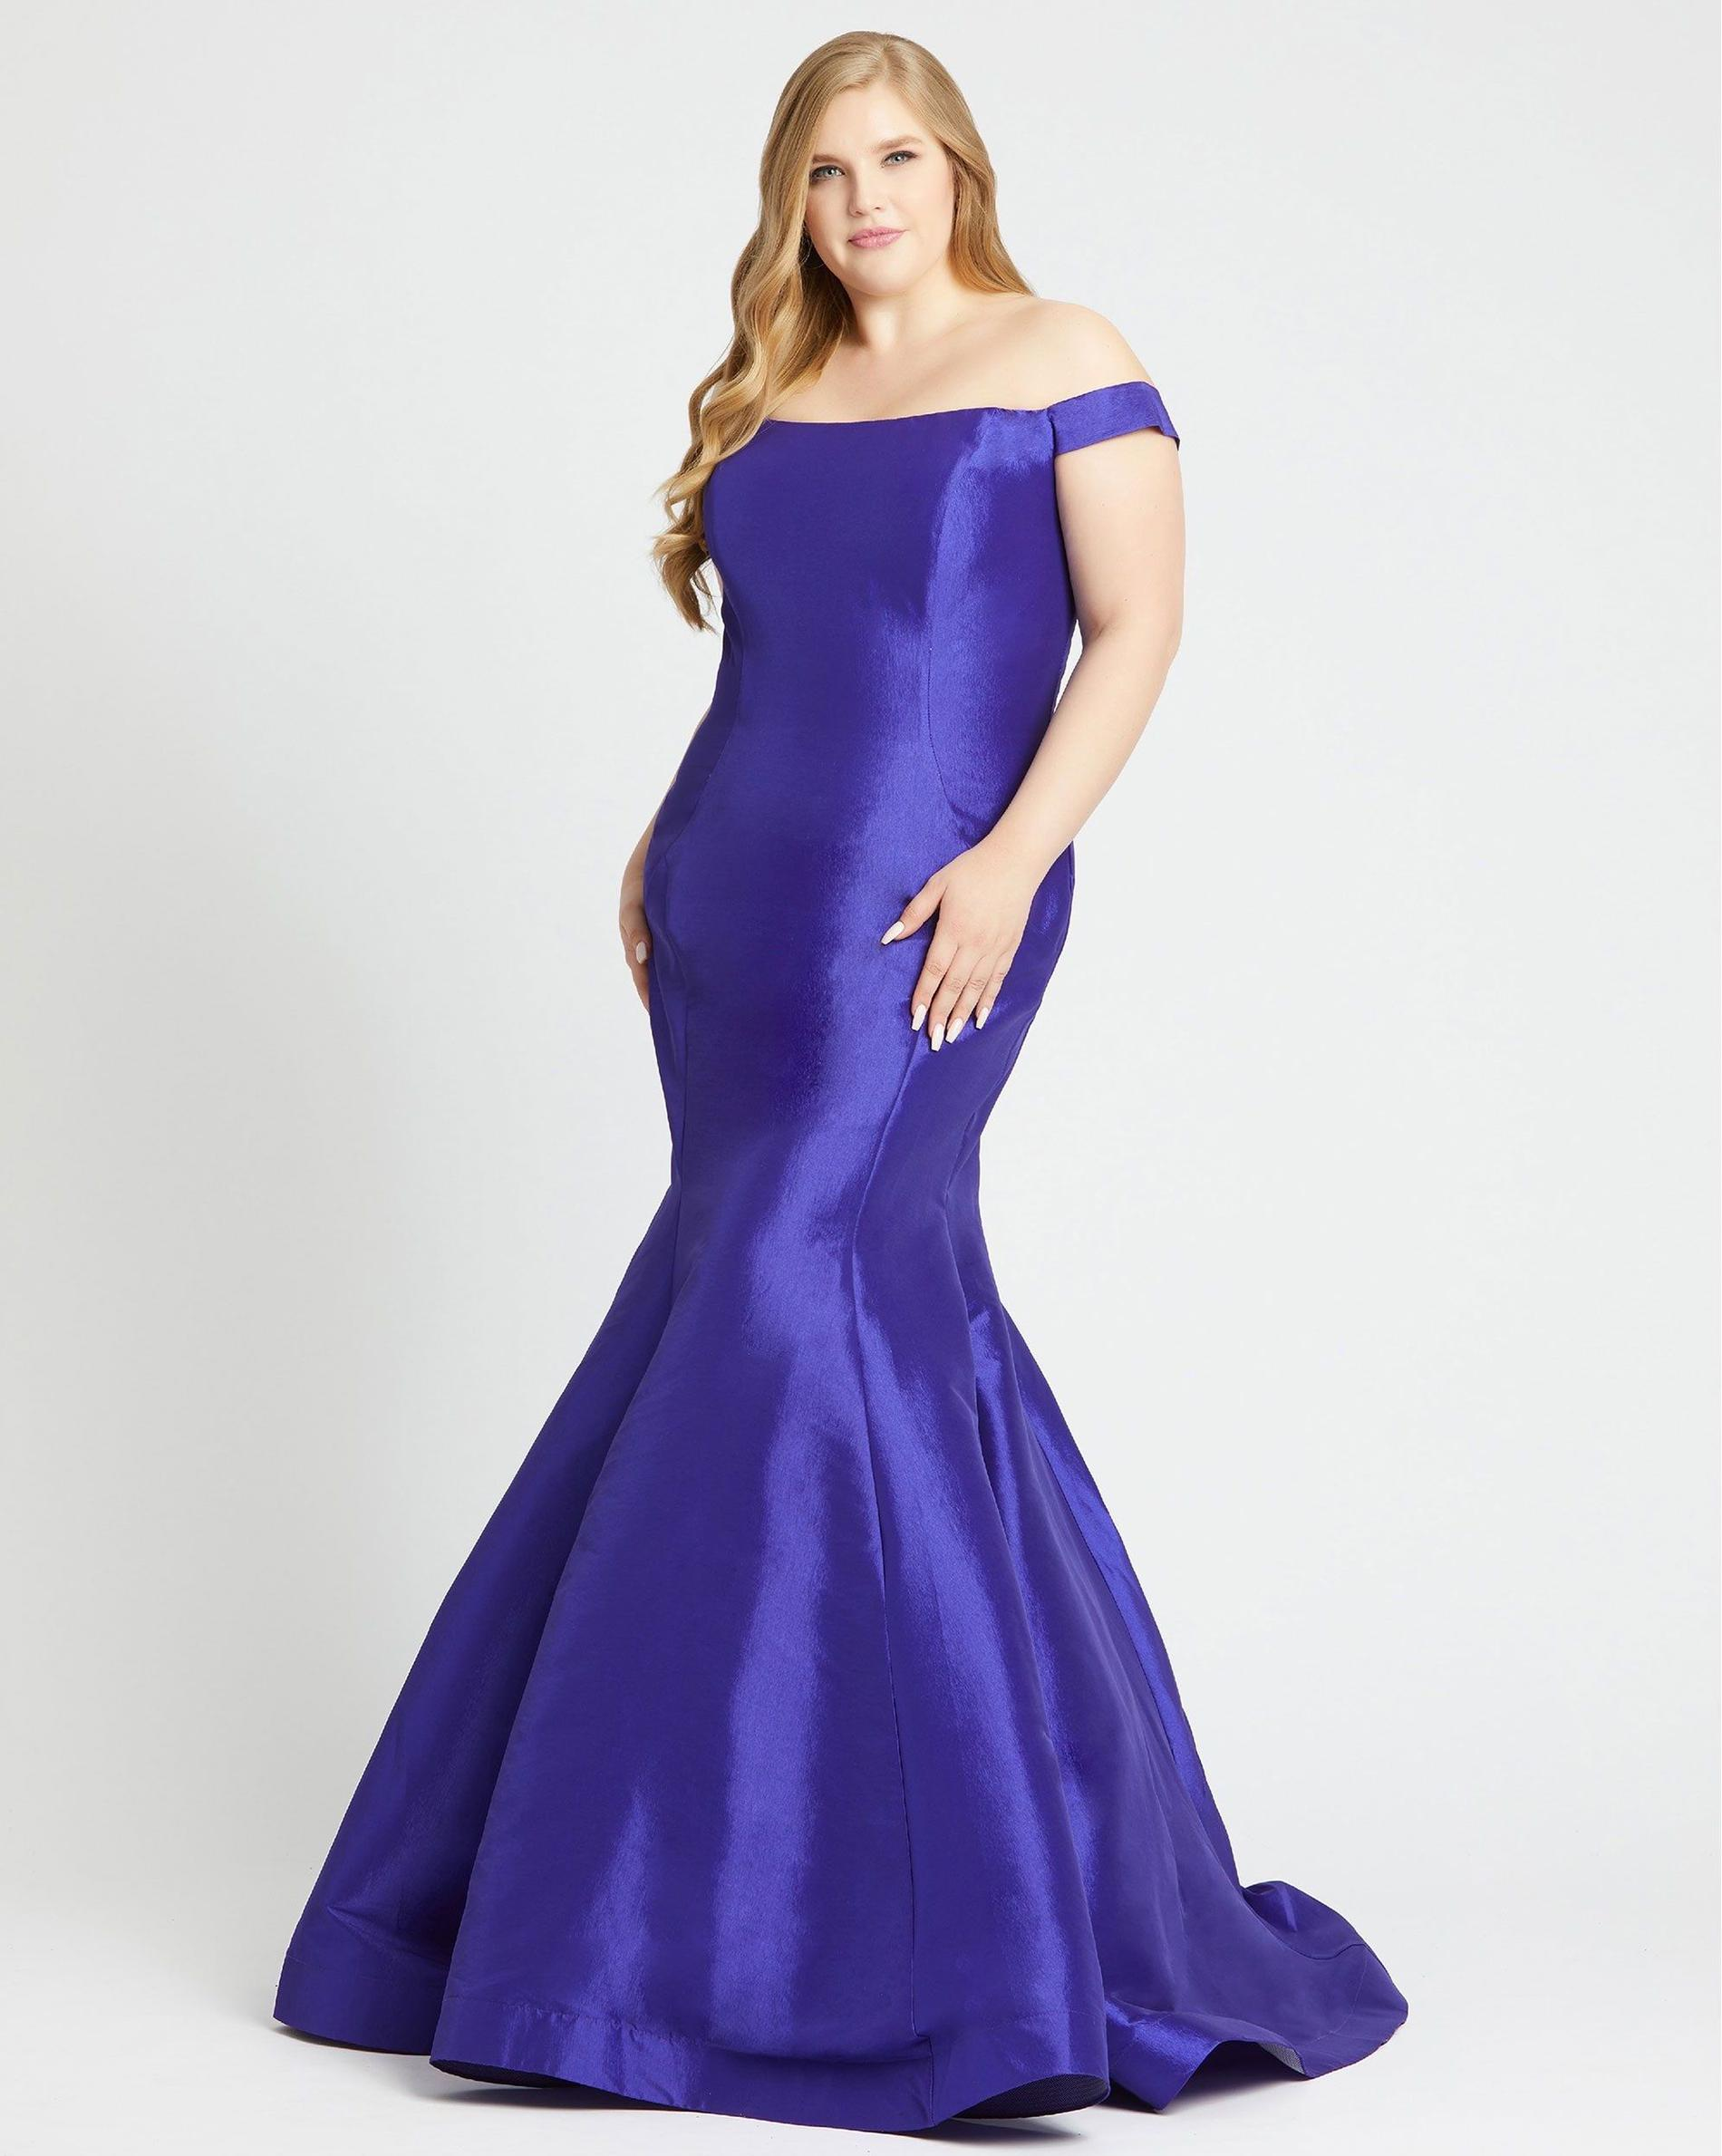 Style 66803 Mac Duggal Purple Size 14 Tall Height Wedding Guest Mermaid Dress on Queenly